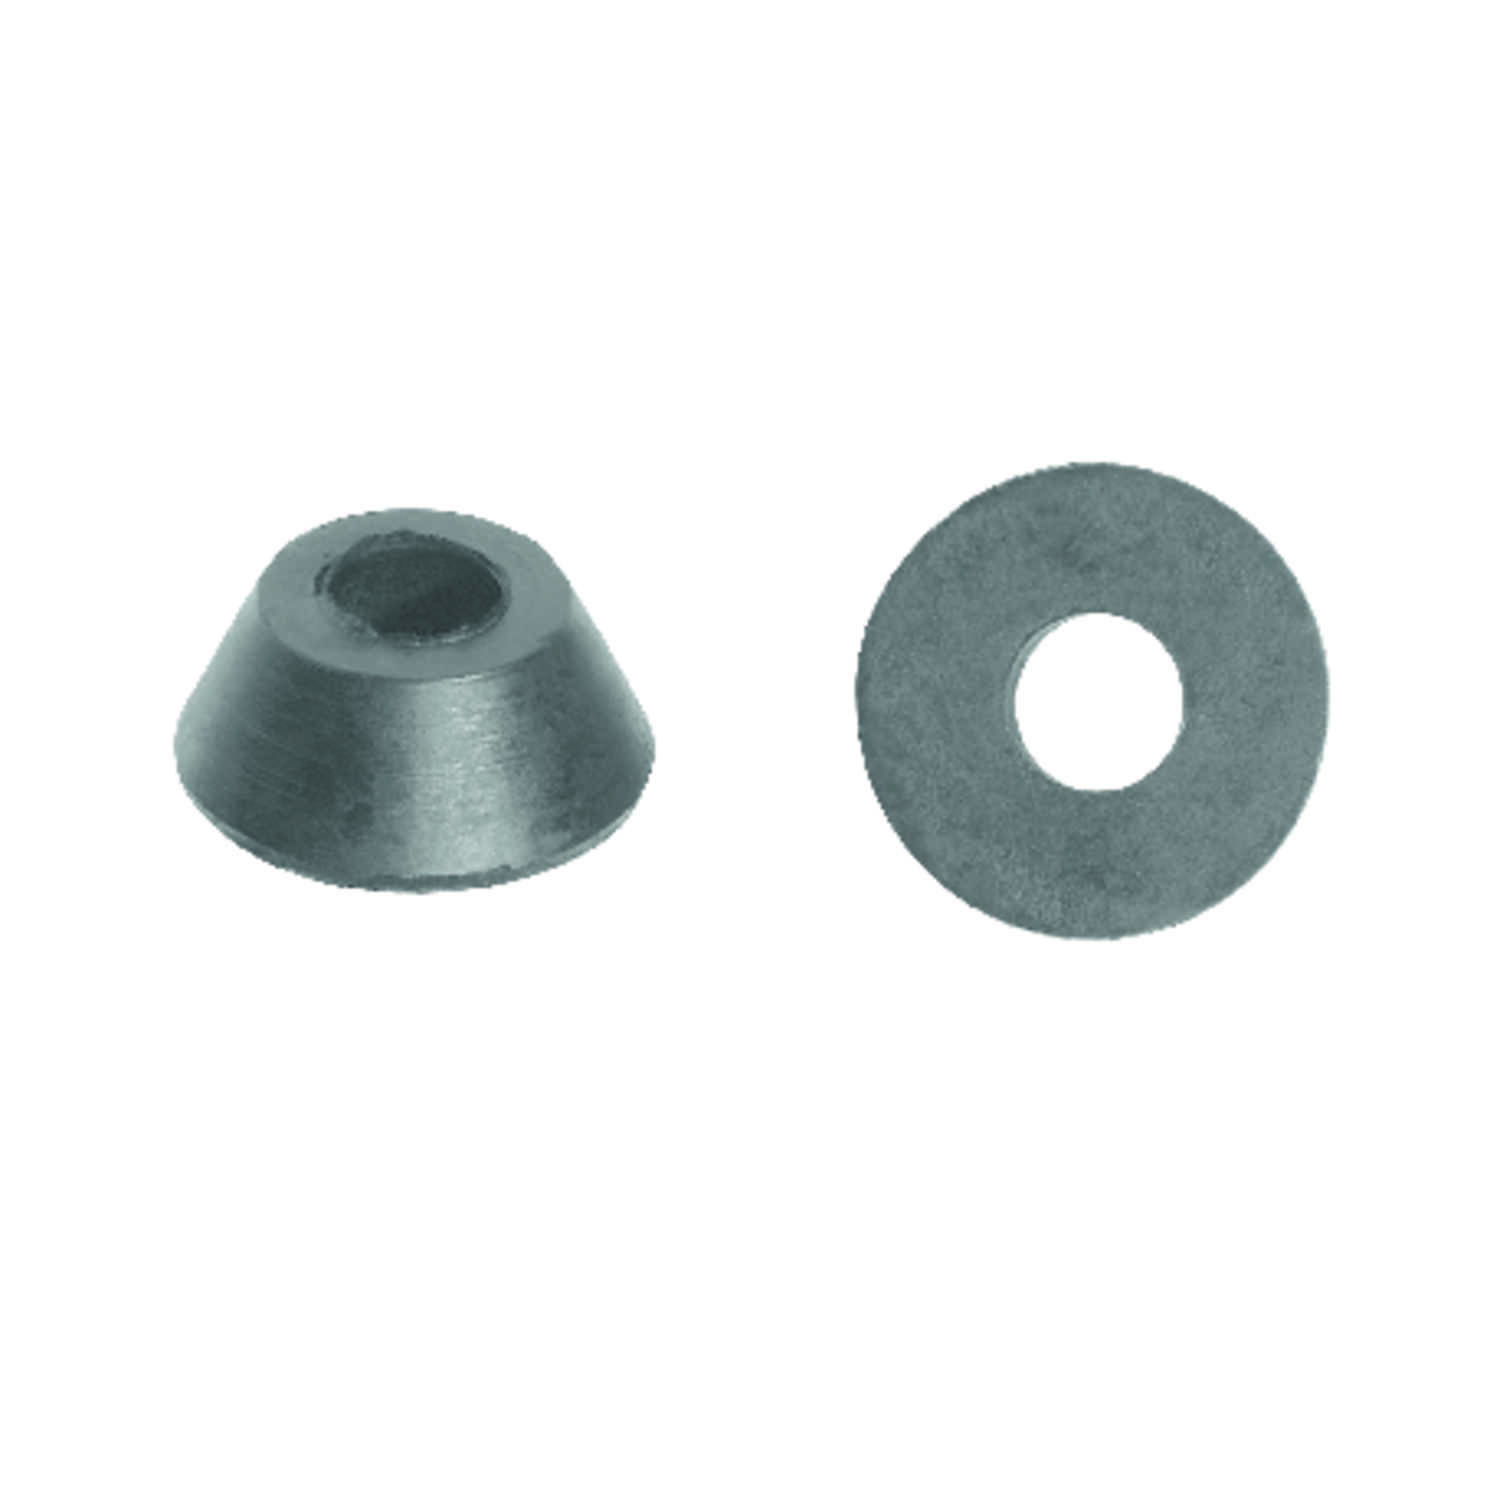 Danco  3/8 in. Dia. Synthetic Rubber  Washer  5 pk